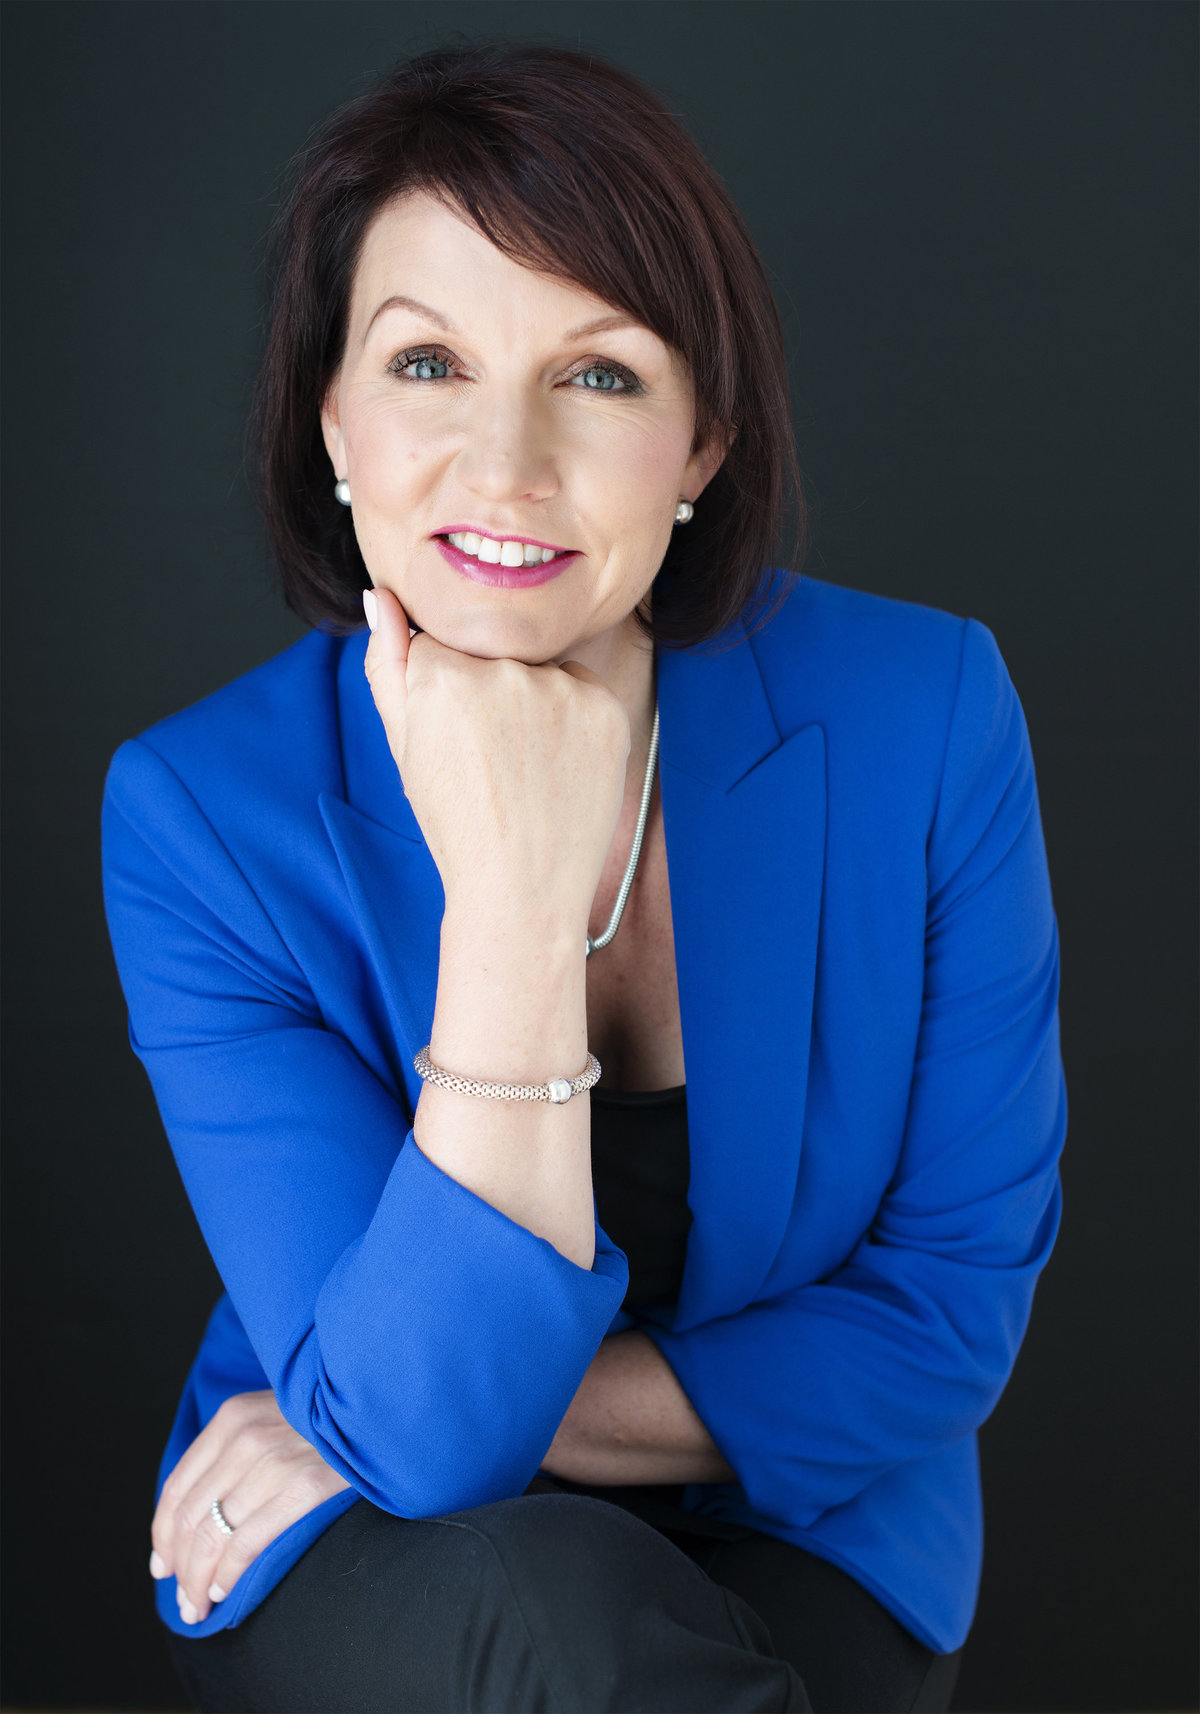 confident headshot of  business woman sitting on chair with hand  under chin wearing blue jacket looking into camera  photograph taken by oakville best photography studio